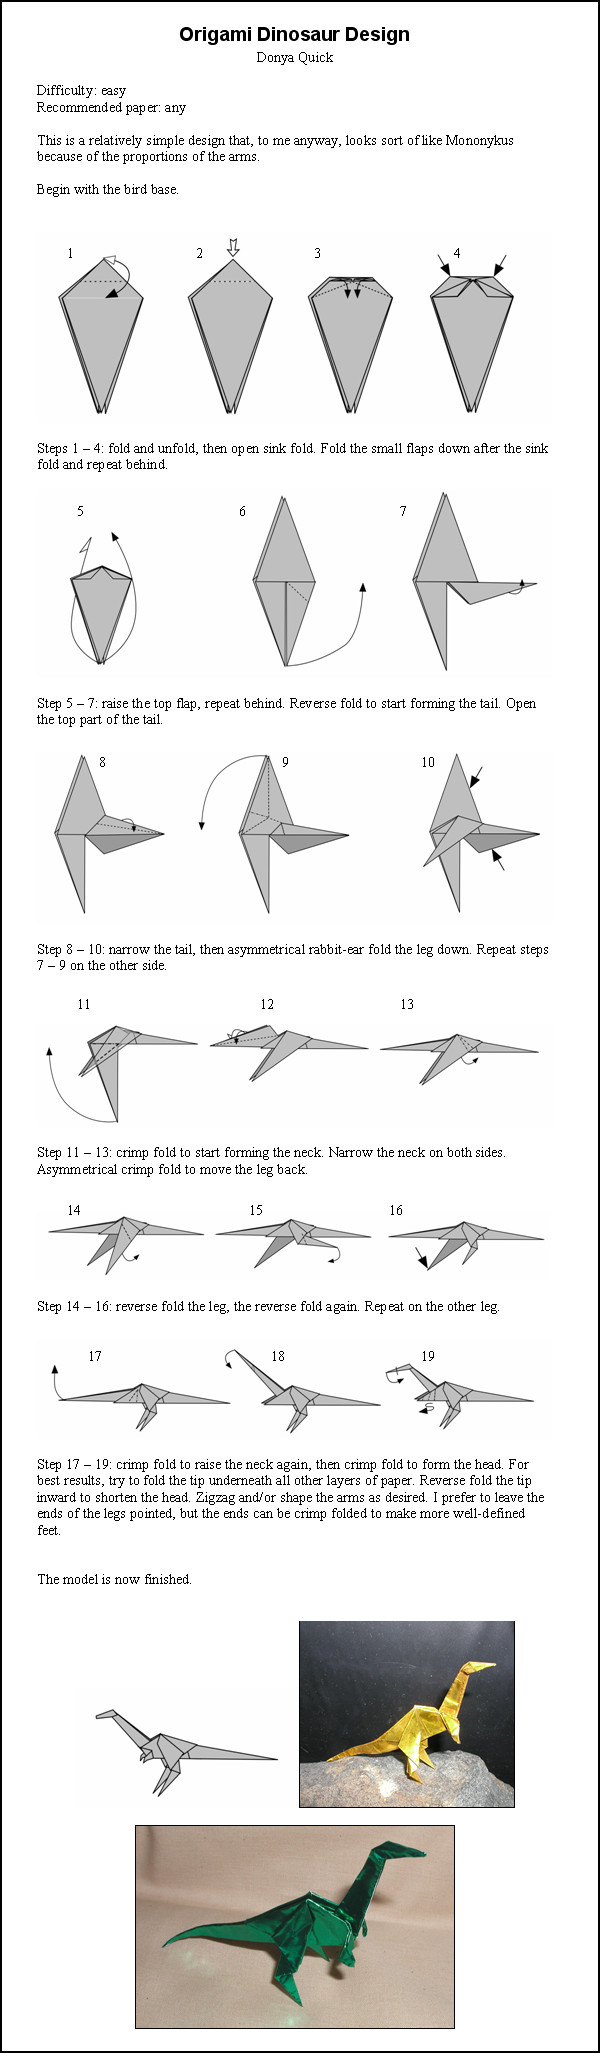 Origami Dinosaur How To Make Origami Dinosaurs